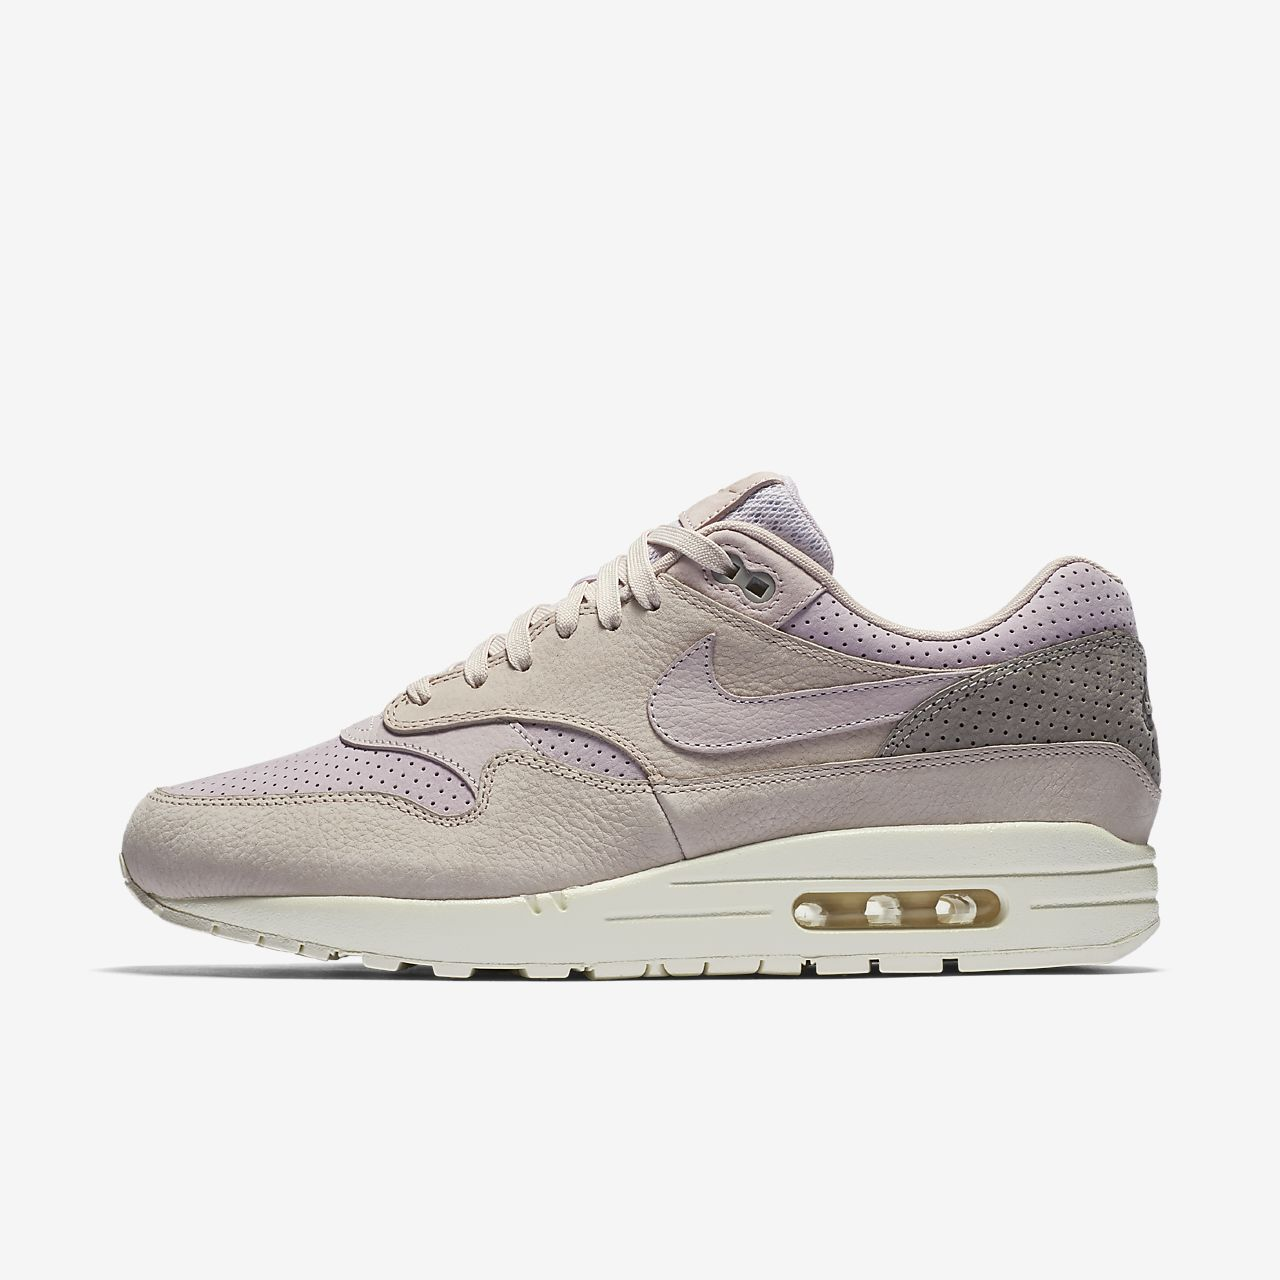 w's air max 1 vt qs vachetta tan arctic green | Flight Club